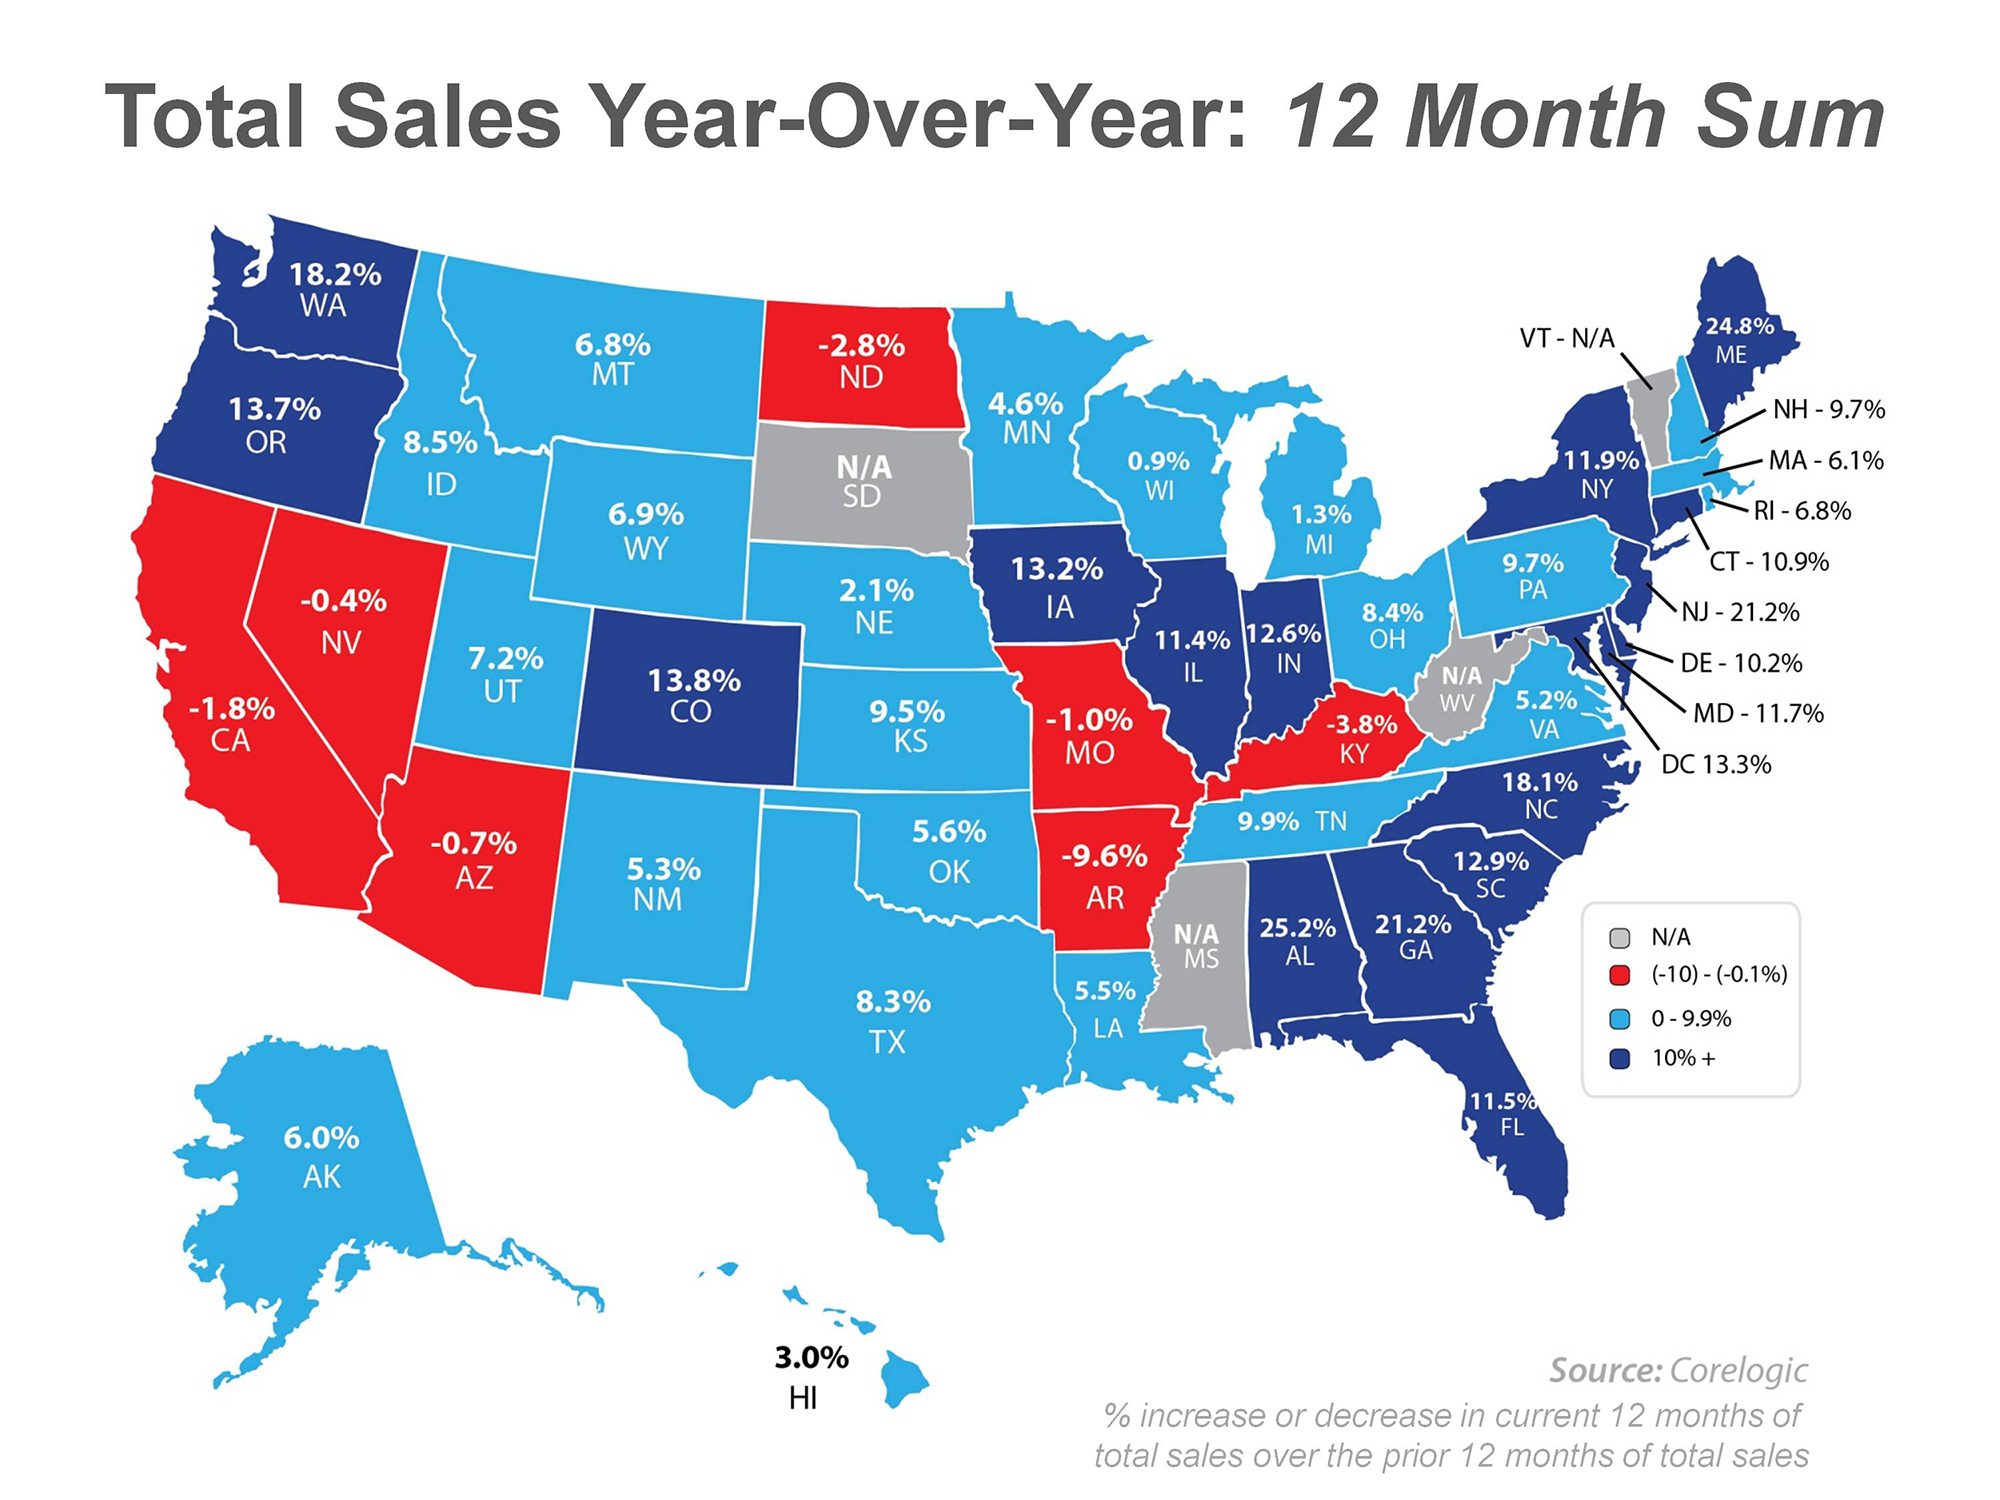 Total Sales - 12 Month